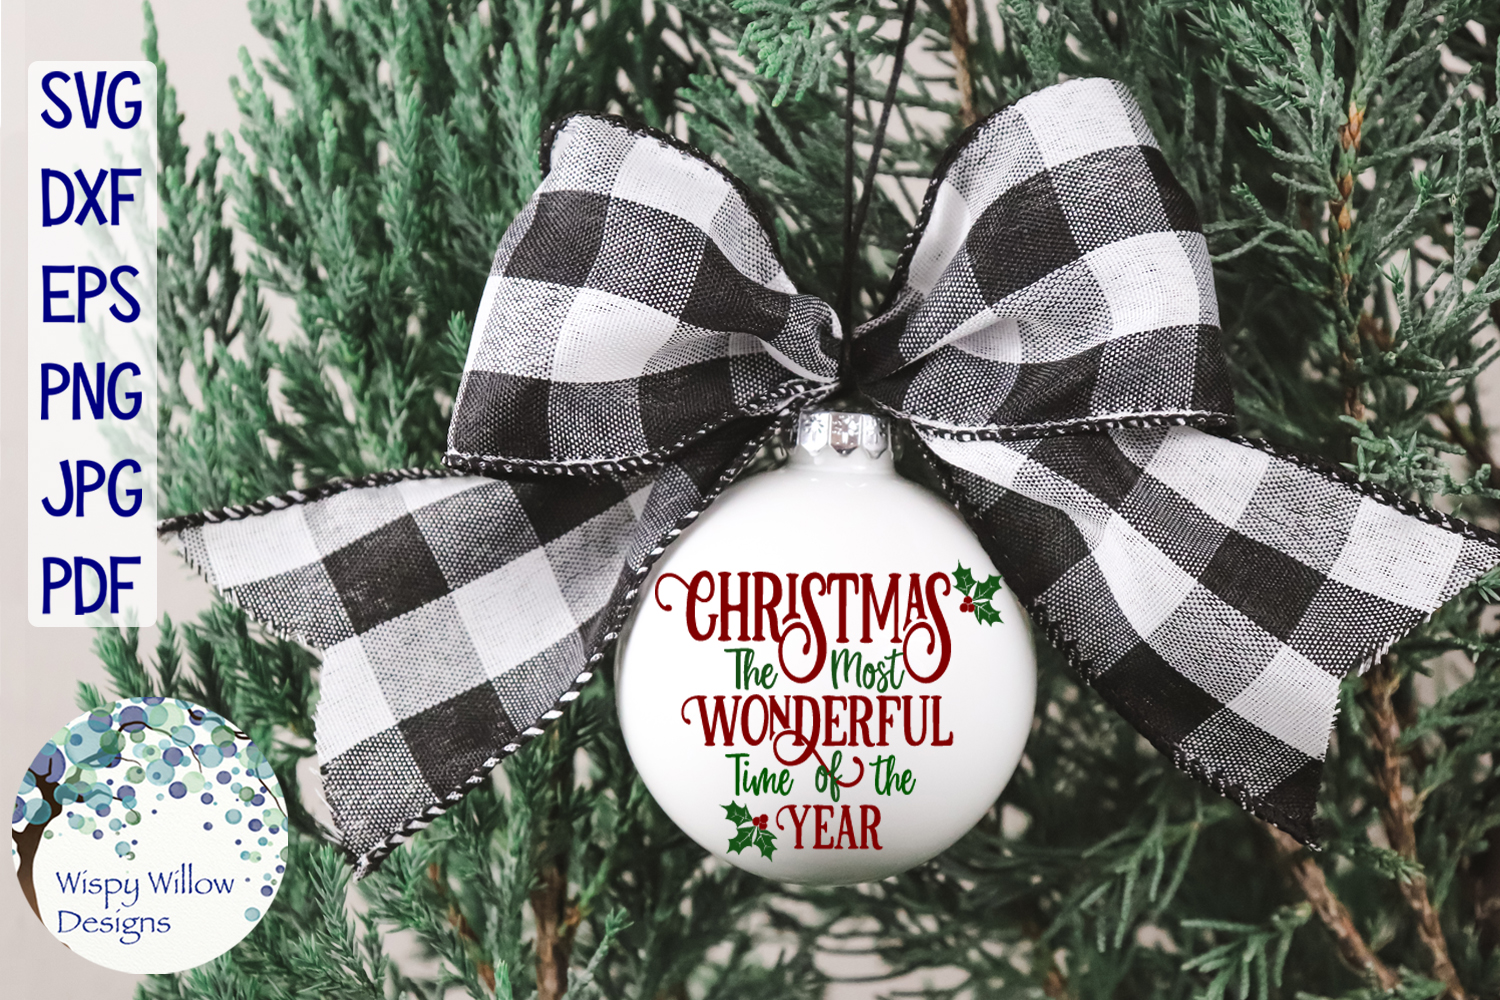 Christmas The Most Wonderful Time Of The Year SVG Cut File example image 2